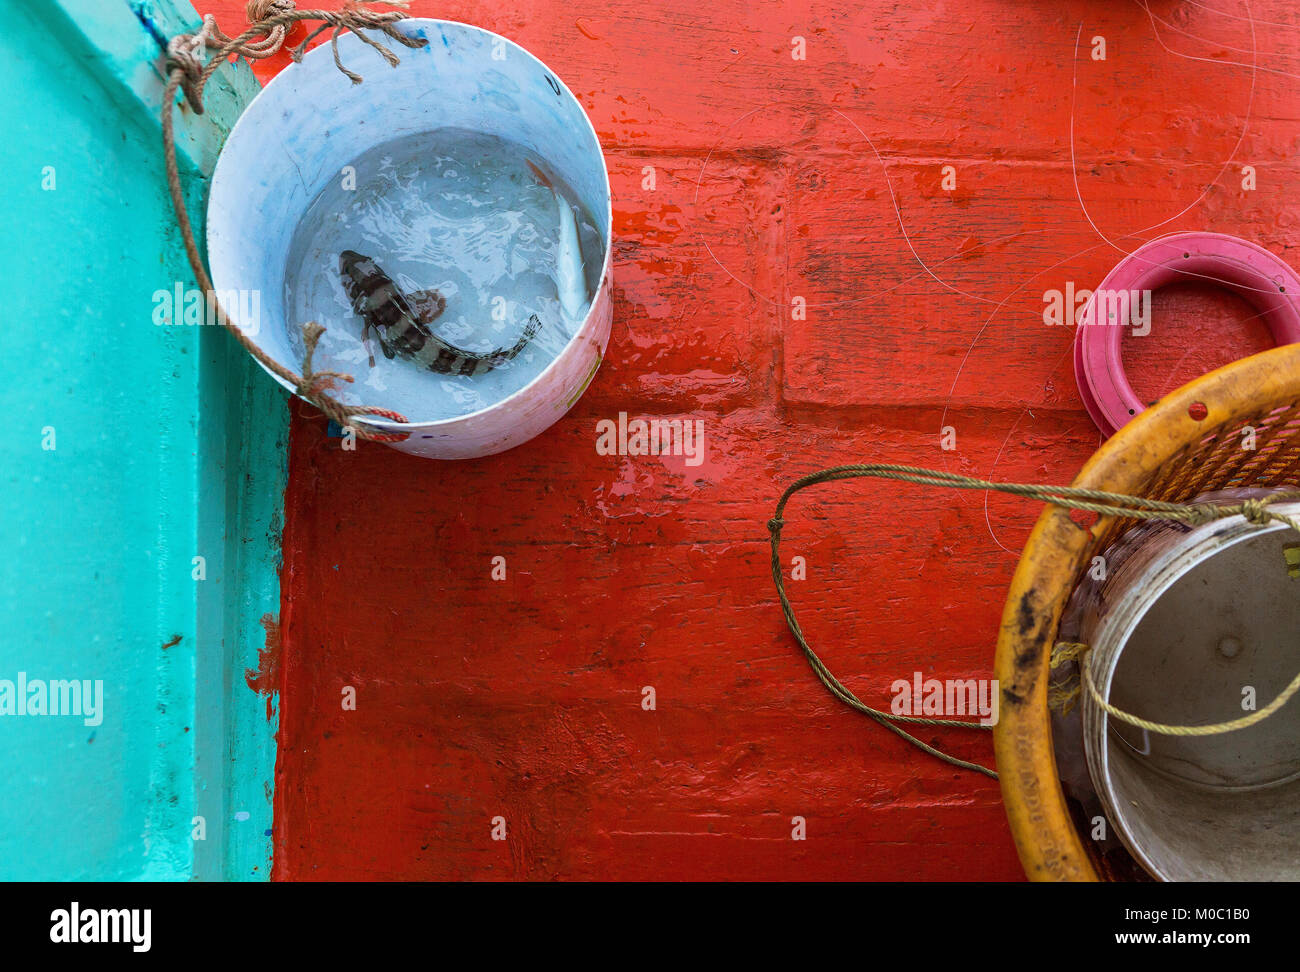 colorful abstract art of fishing gear on the boat - Stock Image